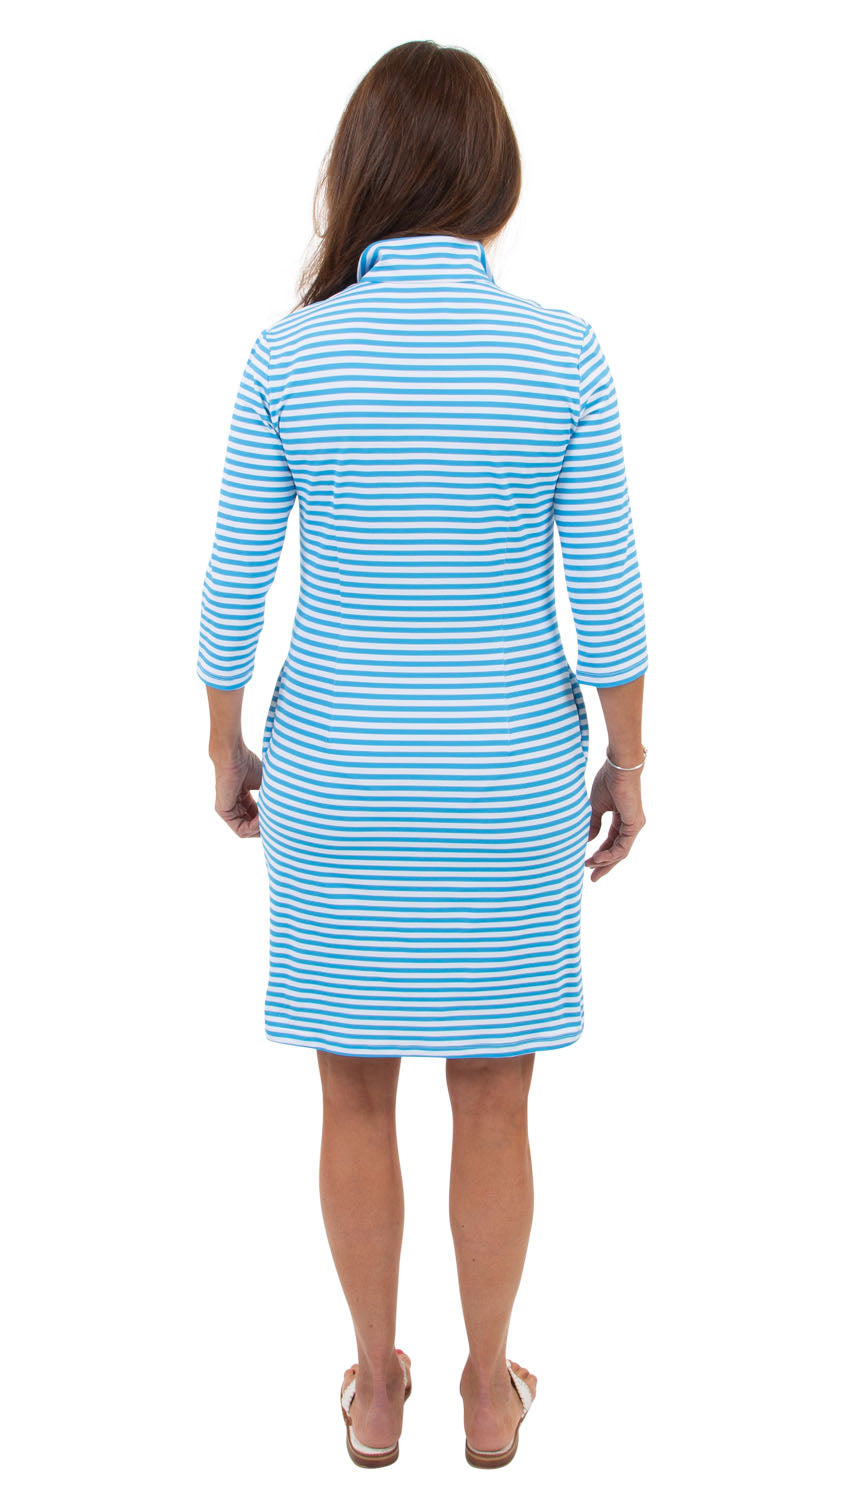 Britt Dress 3/4 Sleeve - Aquarius/White Stripe/Hot Pink